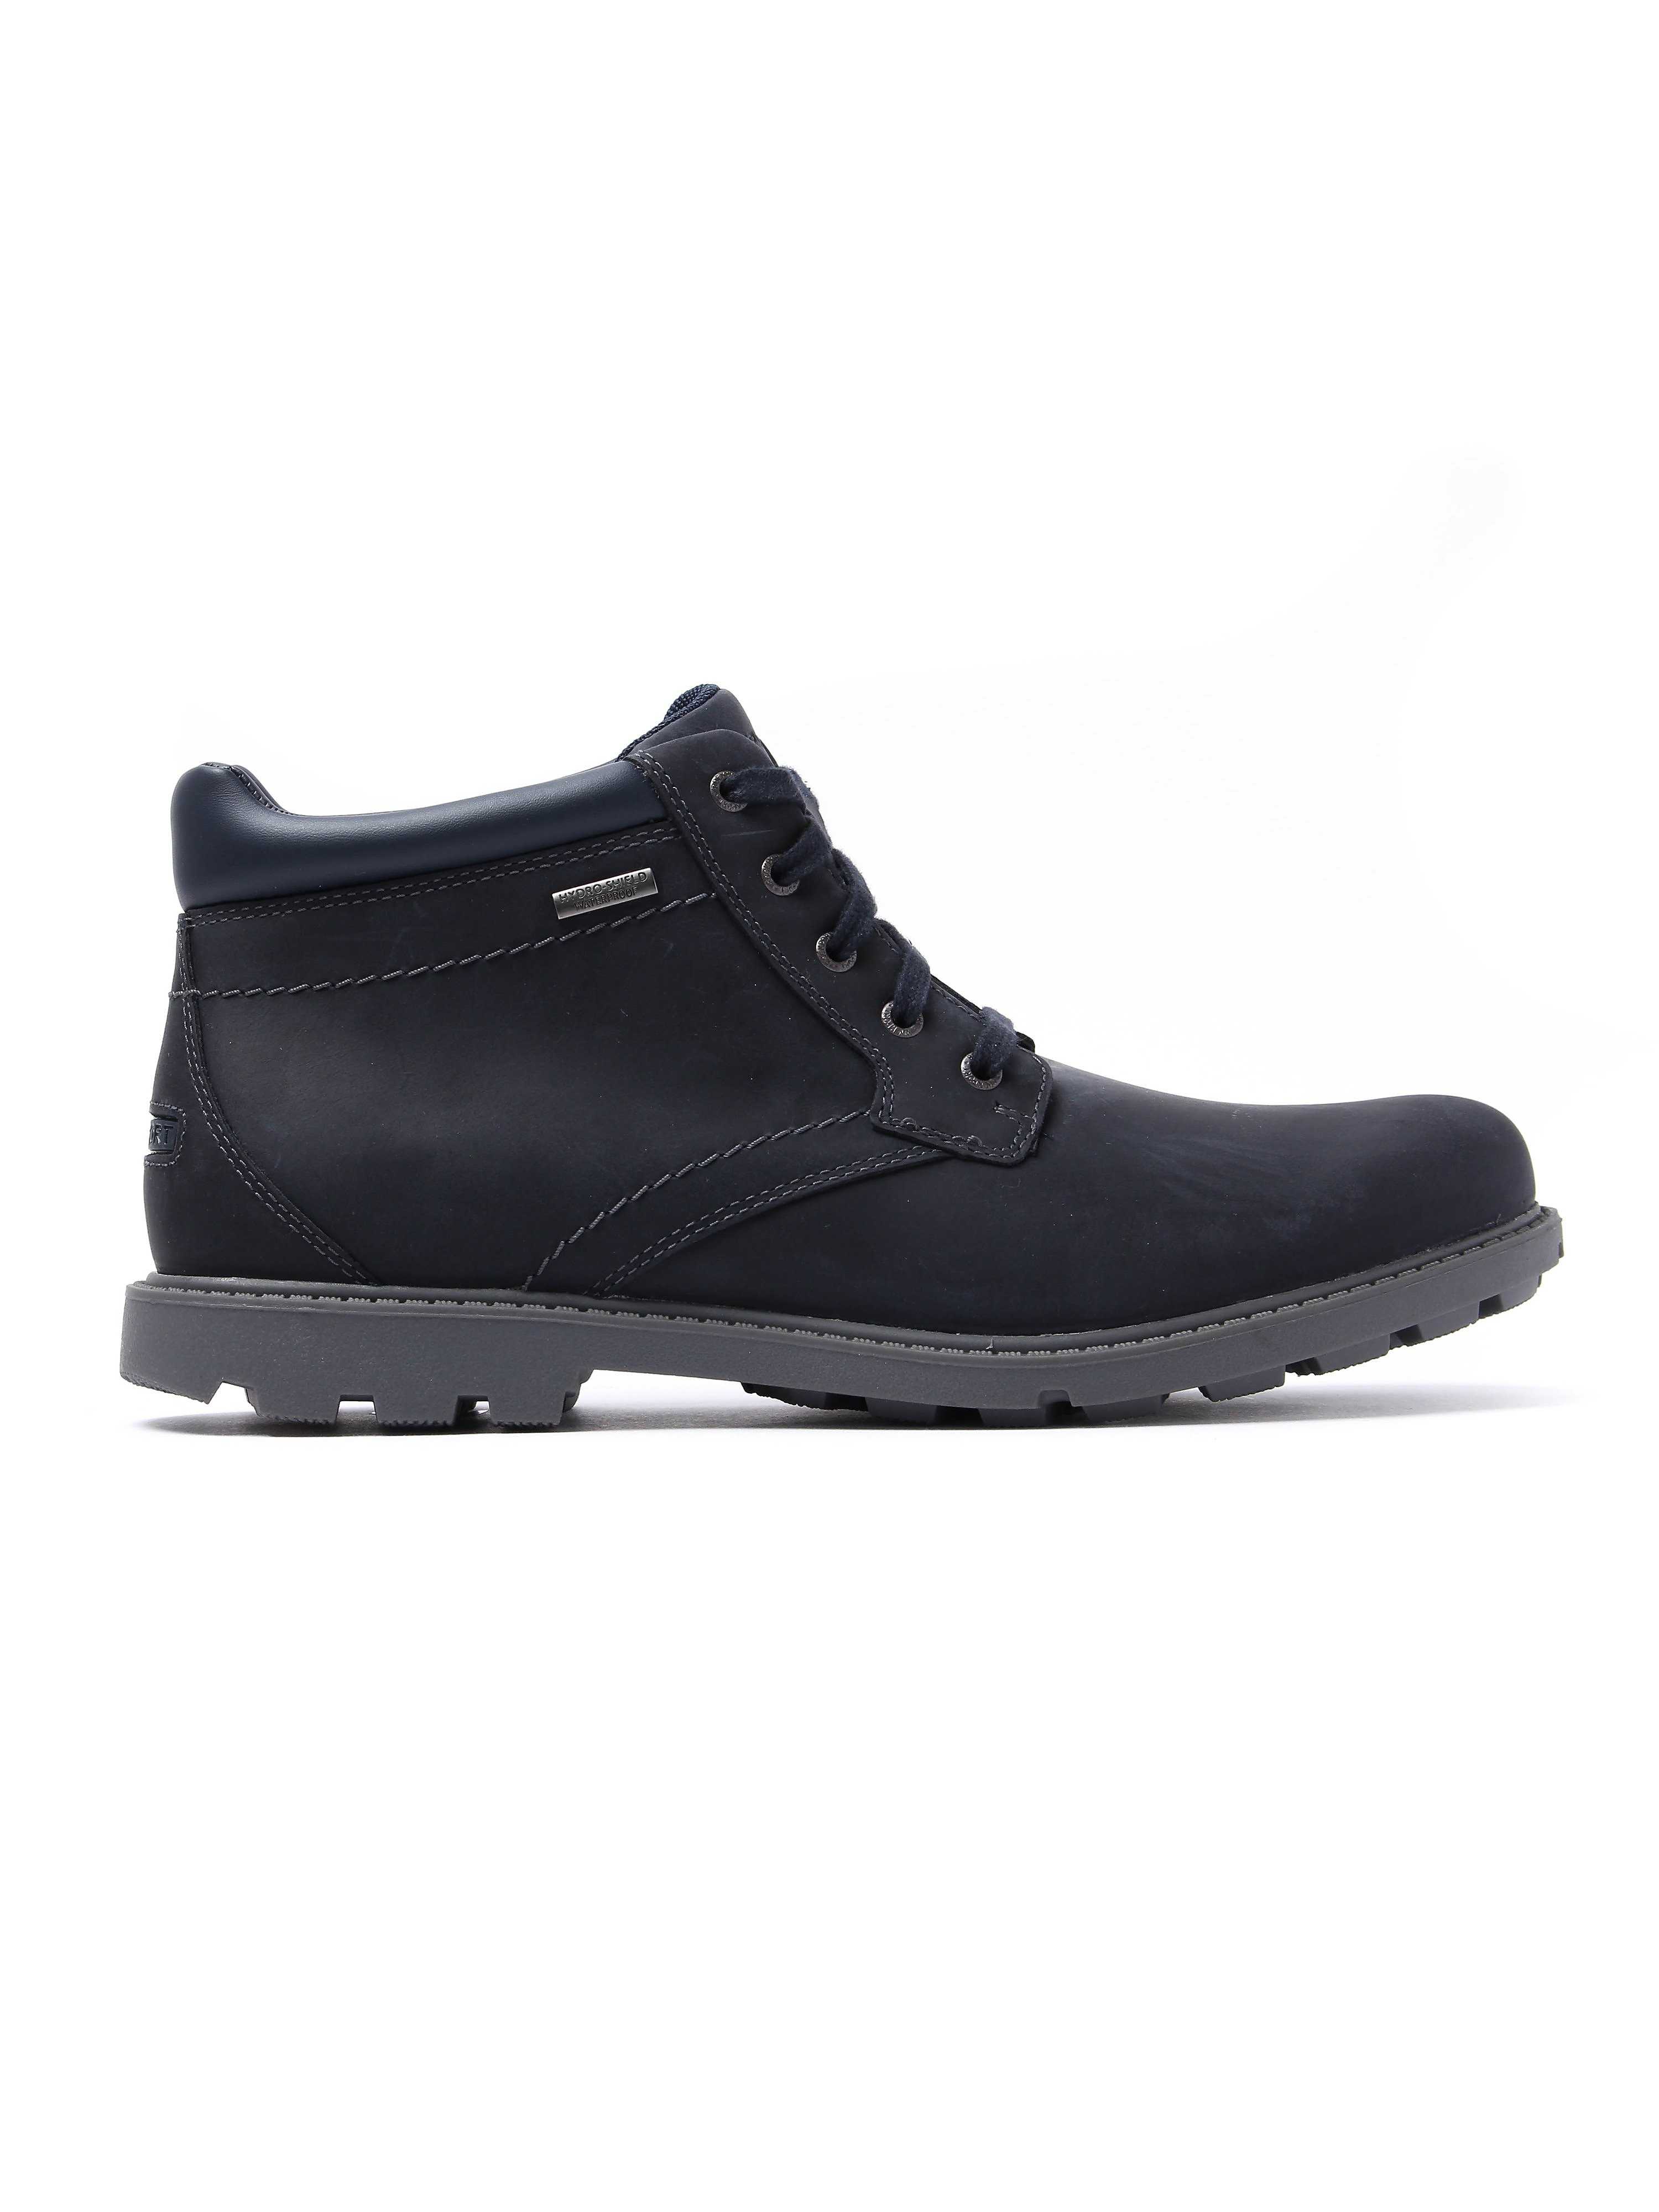 Rockport Rugged Bucus Waterproof Boot - New Dress Blues